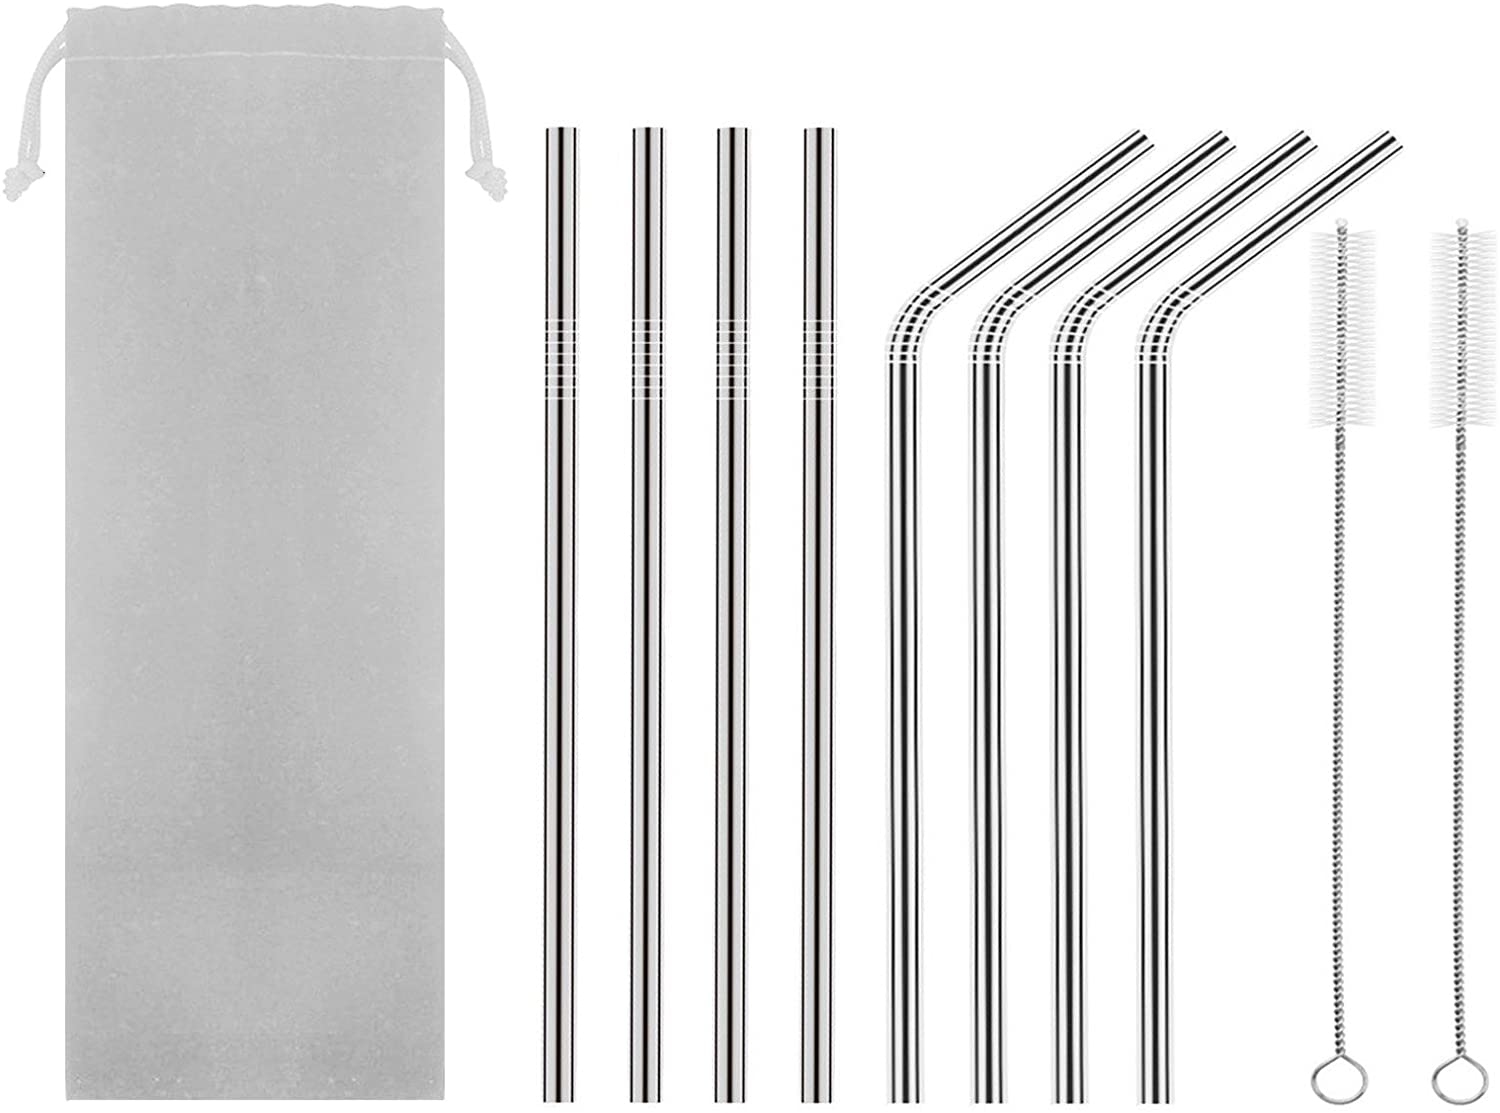 HAHOME 8.5in Stainless Steel Drinking Straws,Reusable Metal Straws (4 Straight + 4 Bent + 2 Brushes),Silver